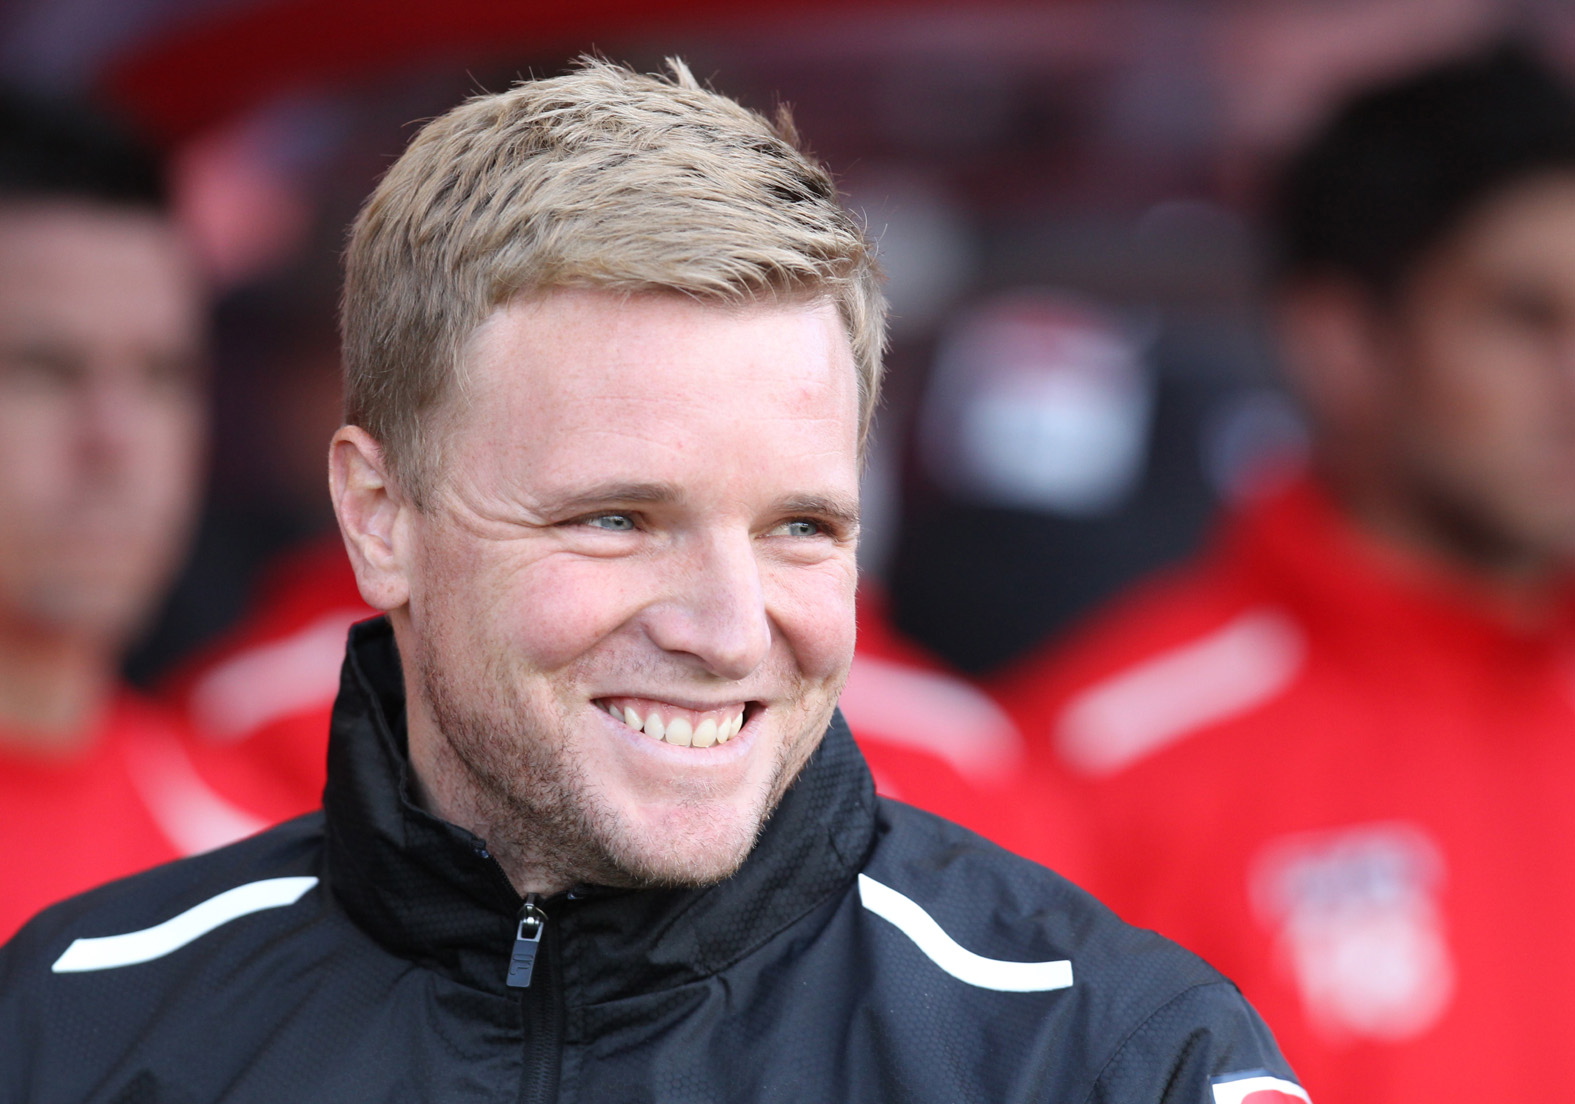 EXCITED: AFC Bournemouth boss Eddie Howe